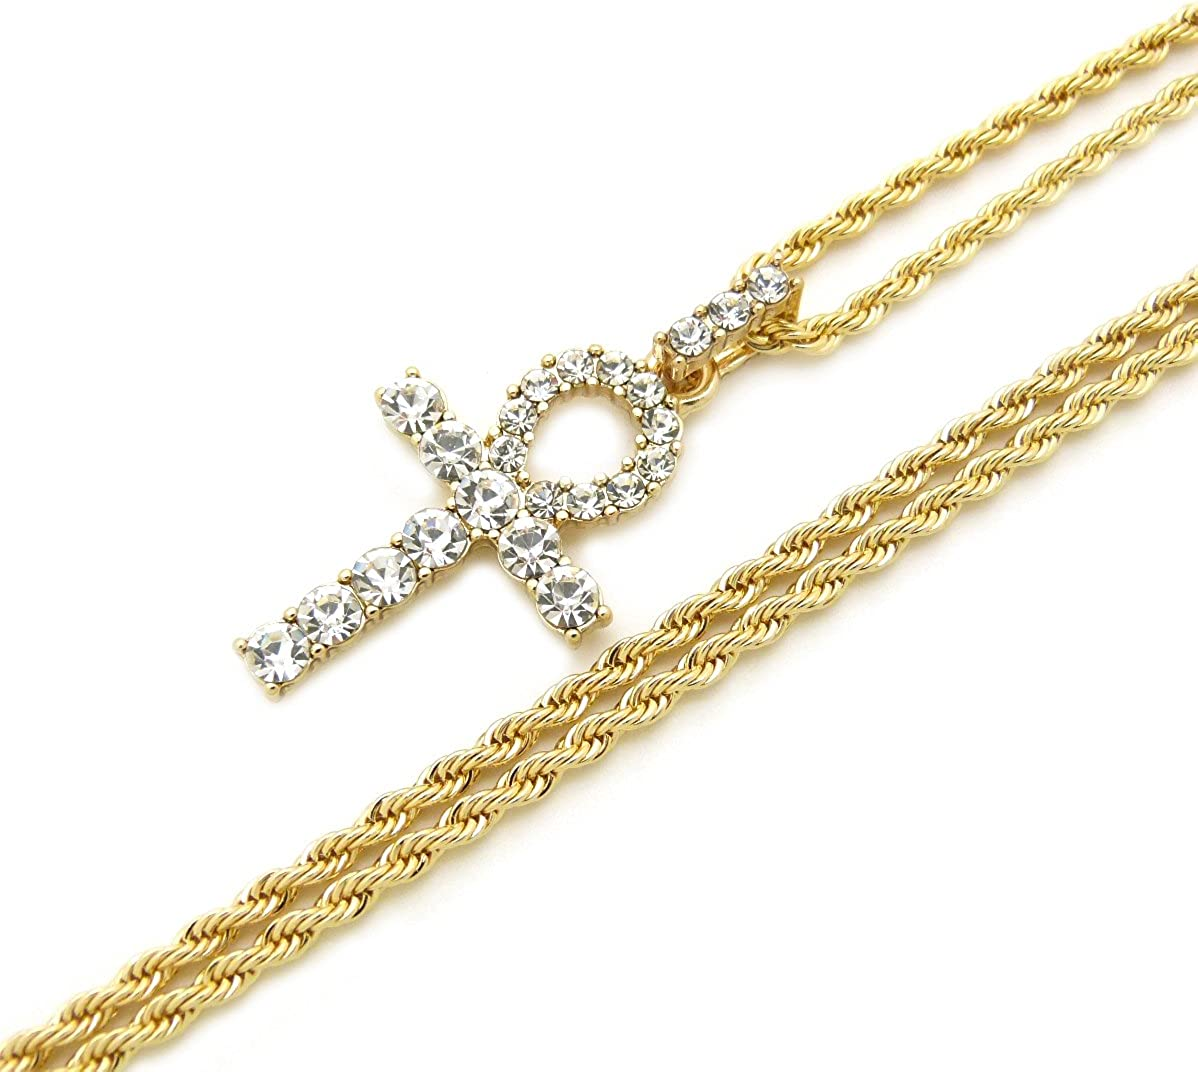 Fashion 21 Micro Pave Egyptian Ankh Cross Pendant 22 to 27 inches Various Chain Necklace Gold Tone